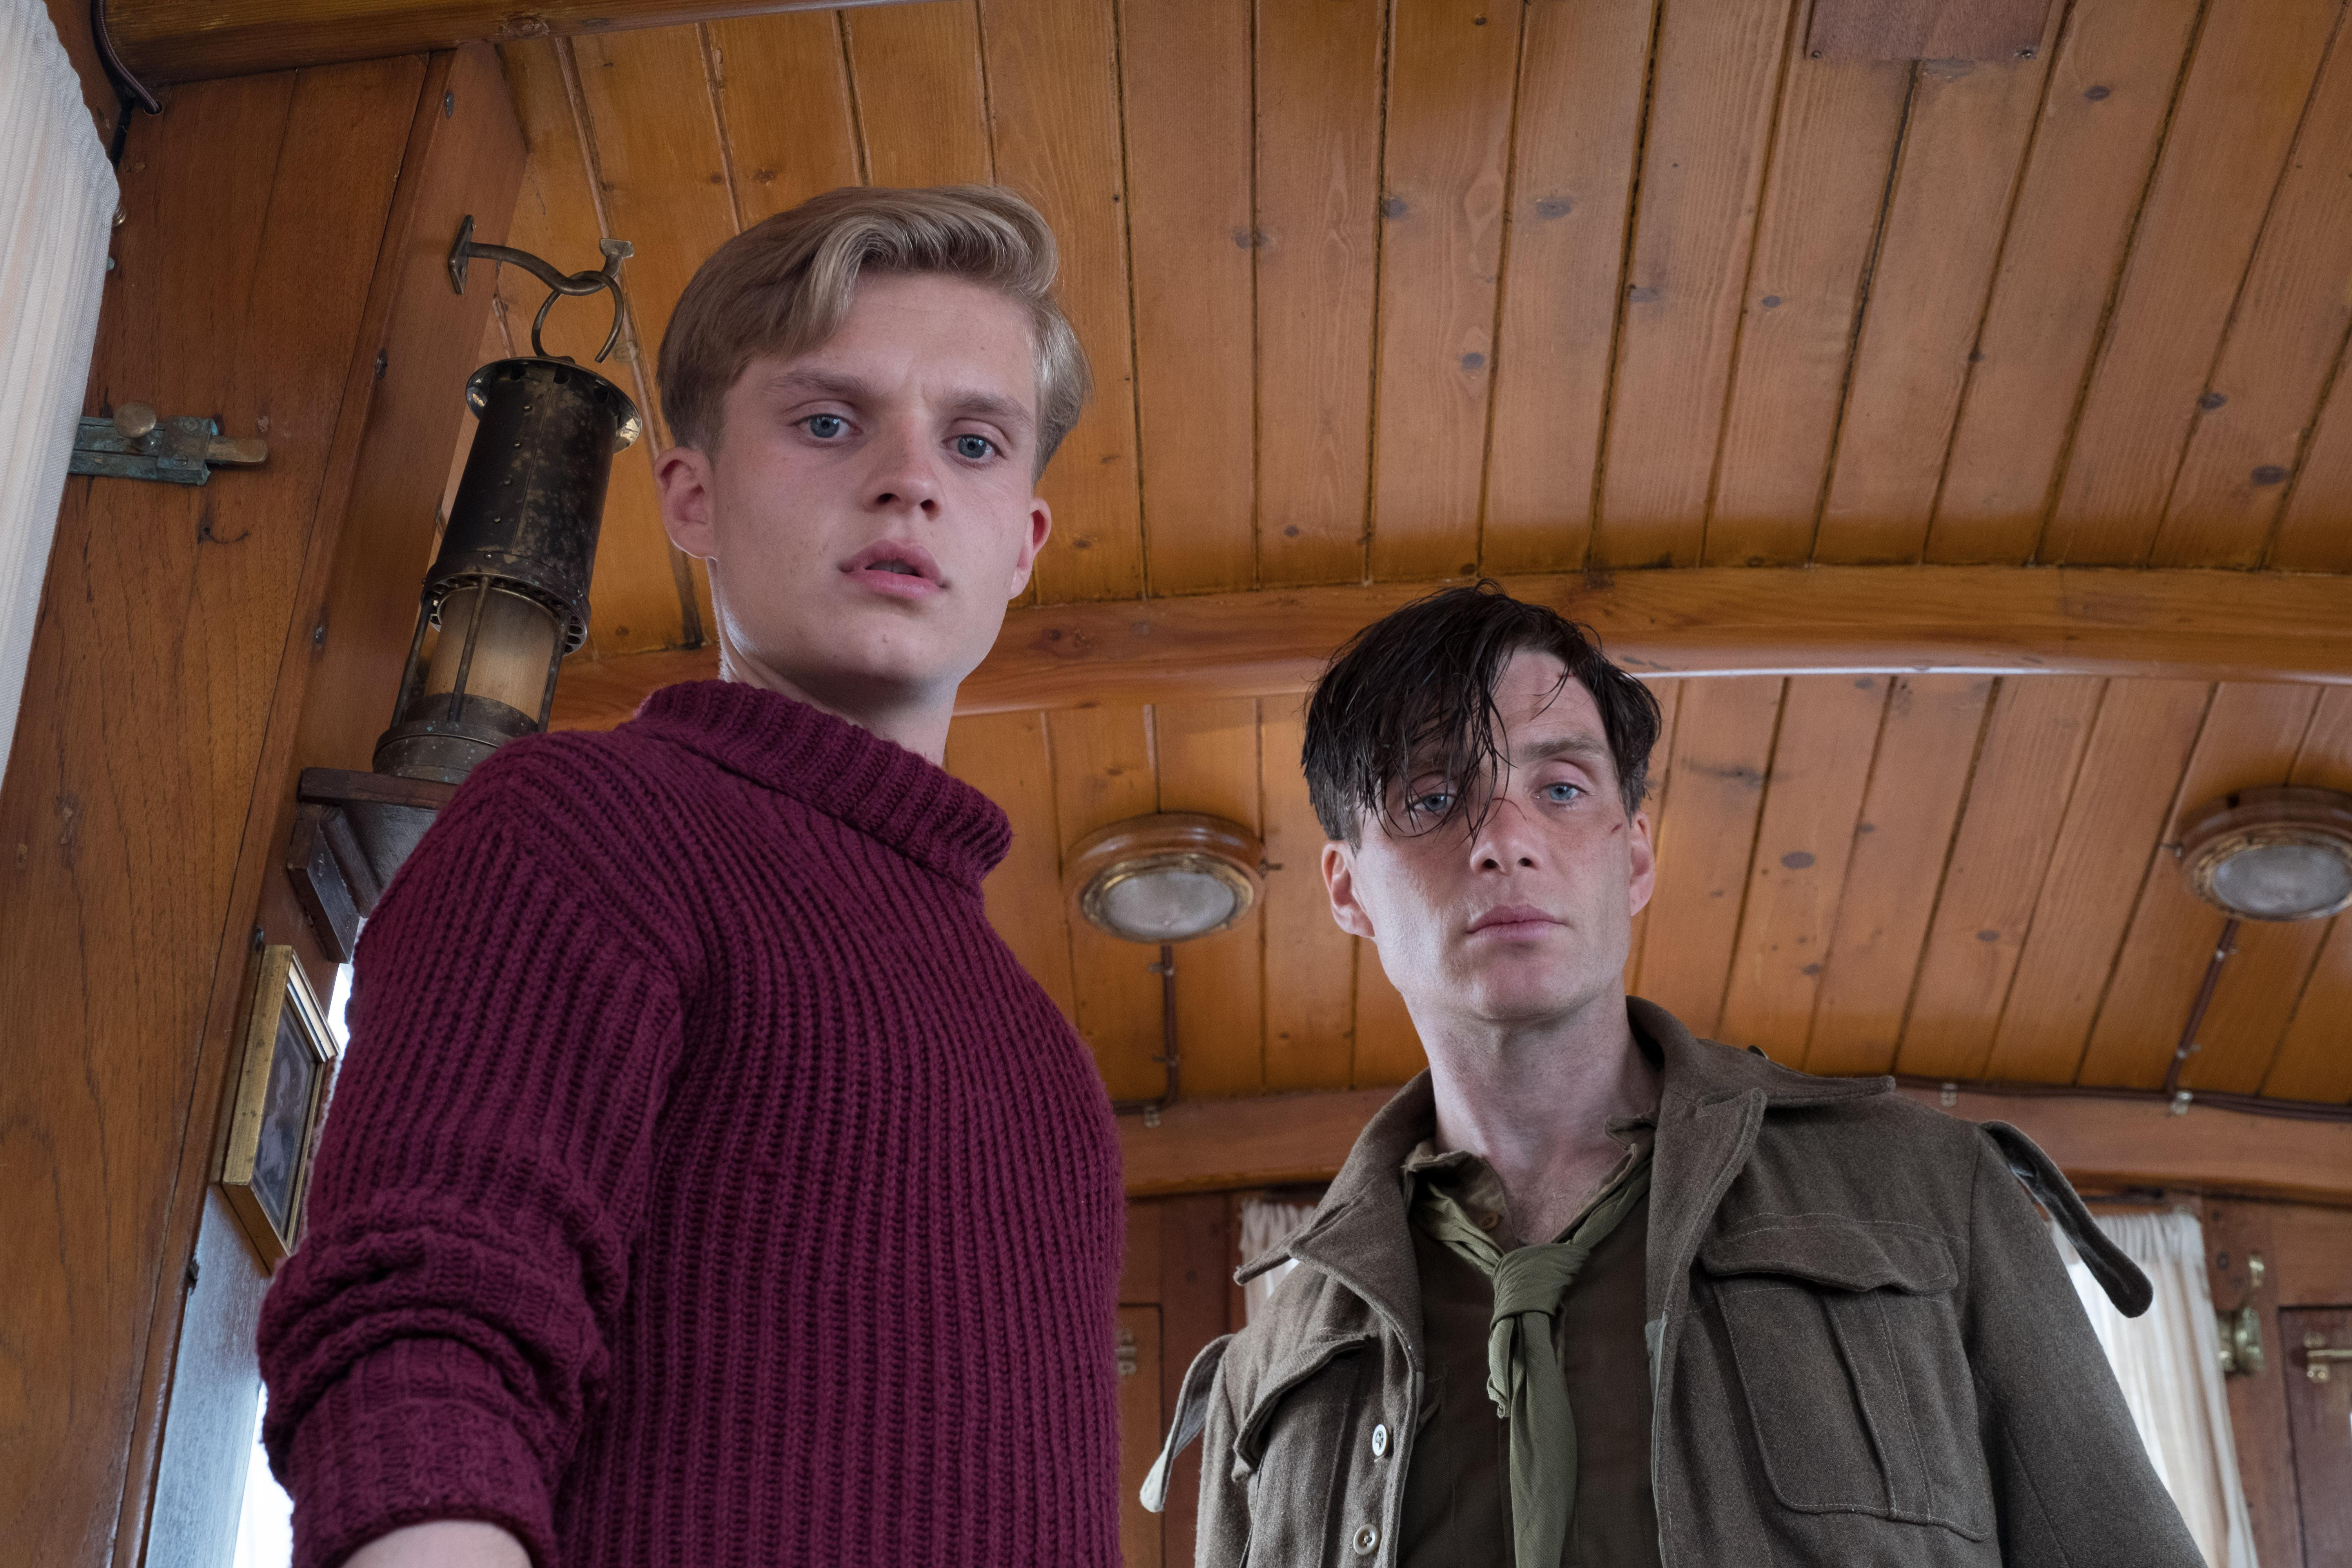 "(L-R) TOM GLYNN-CARNEY as Peter and CILLIAN MURPHY as Shivering Soldier in the Warner Bros. Pictures action thriller ""DUNKIRK,"" a Warner Bros. Pictures release. (Photo: Warner Bros.)"